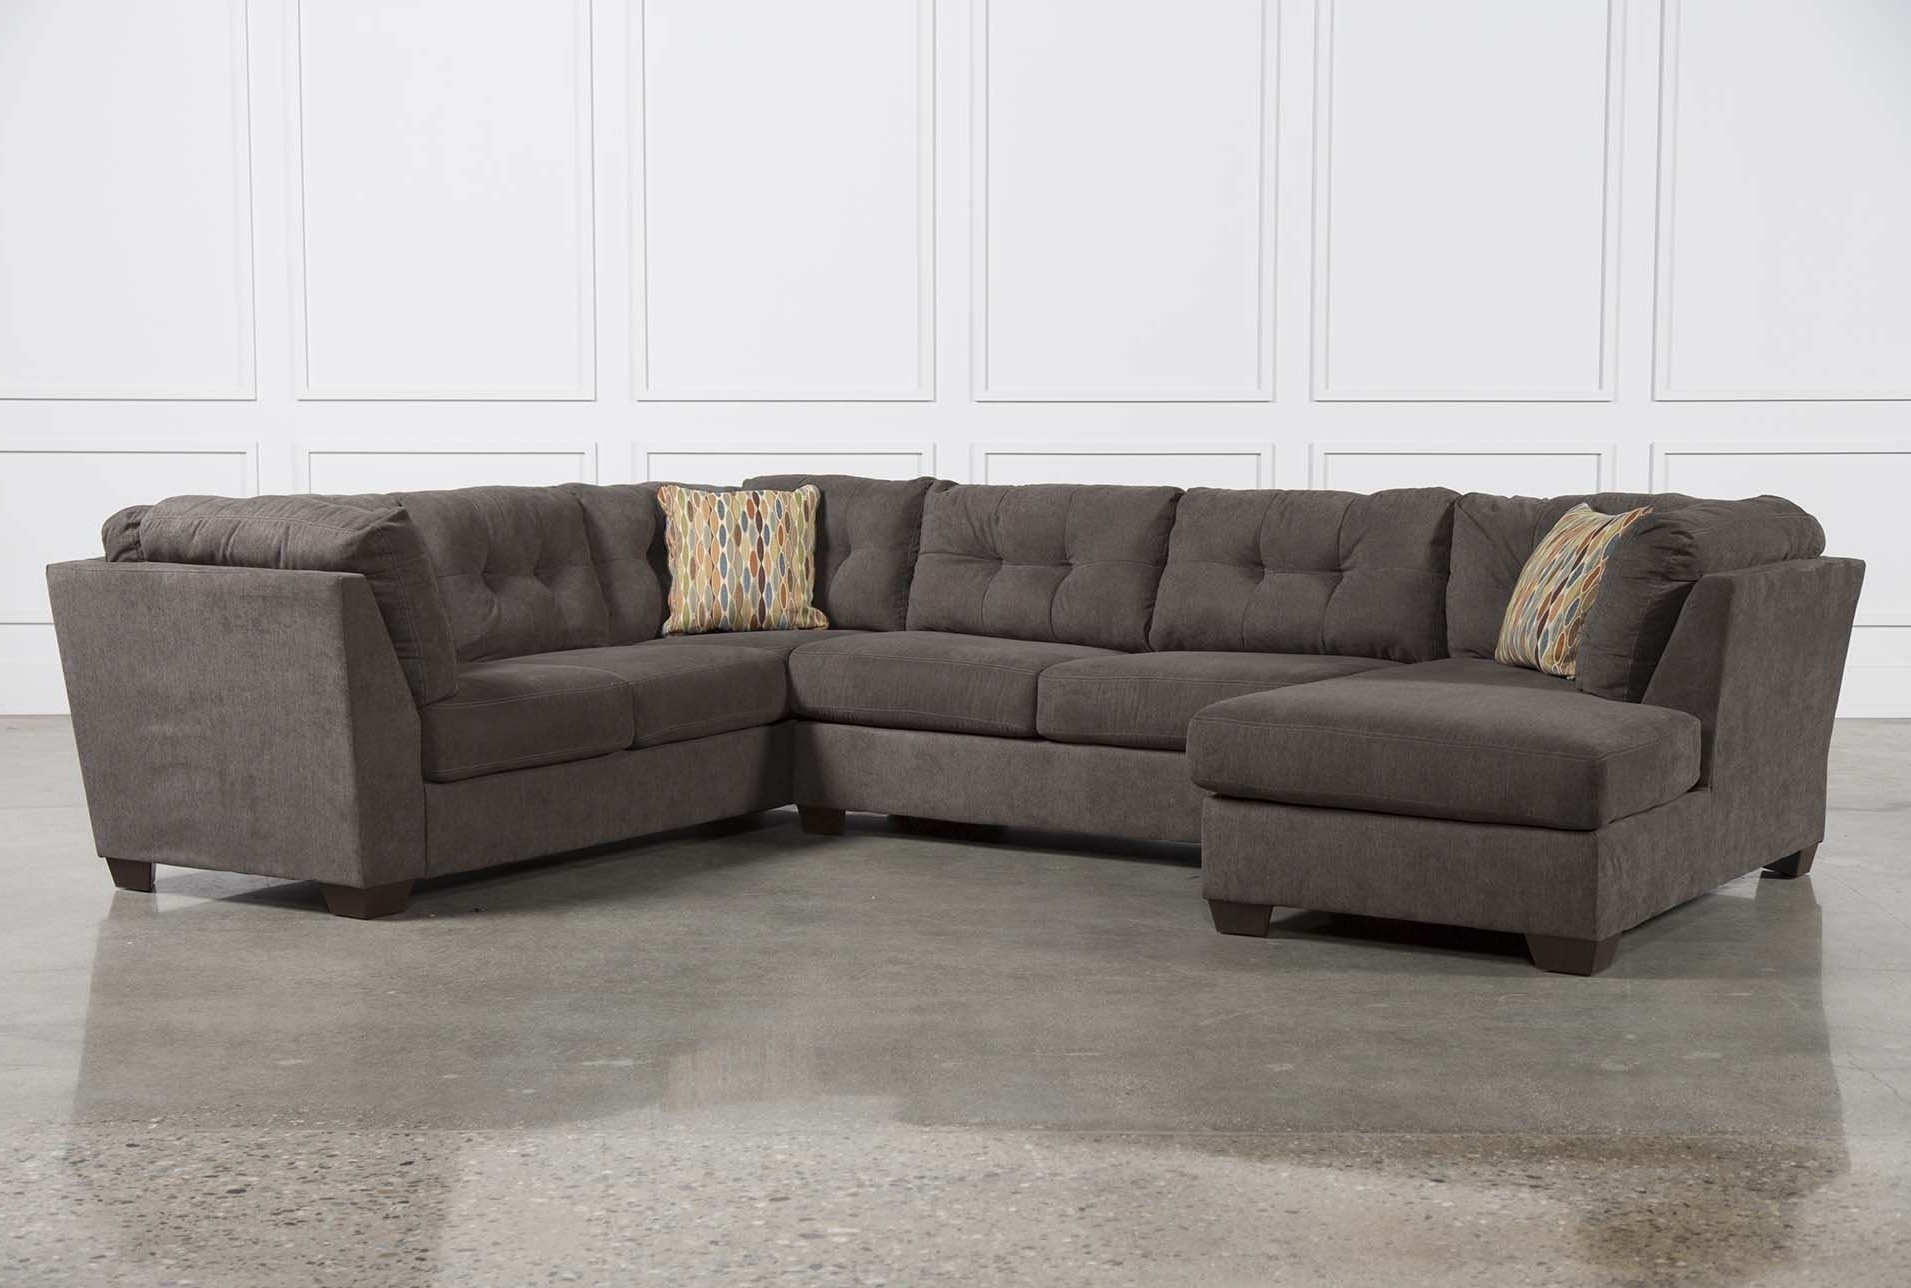 Sectional Sleeper Sofas With Chaise For Fashionable Inspirational Sectional Sleeper Sofa With Chaise 36 On Sofas And (View 16 of 20)